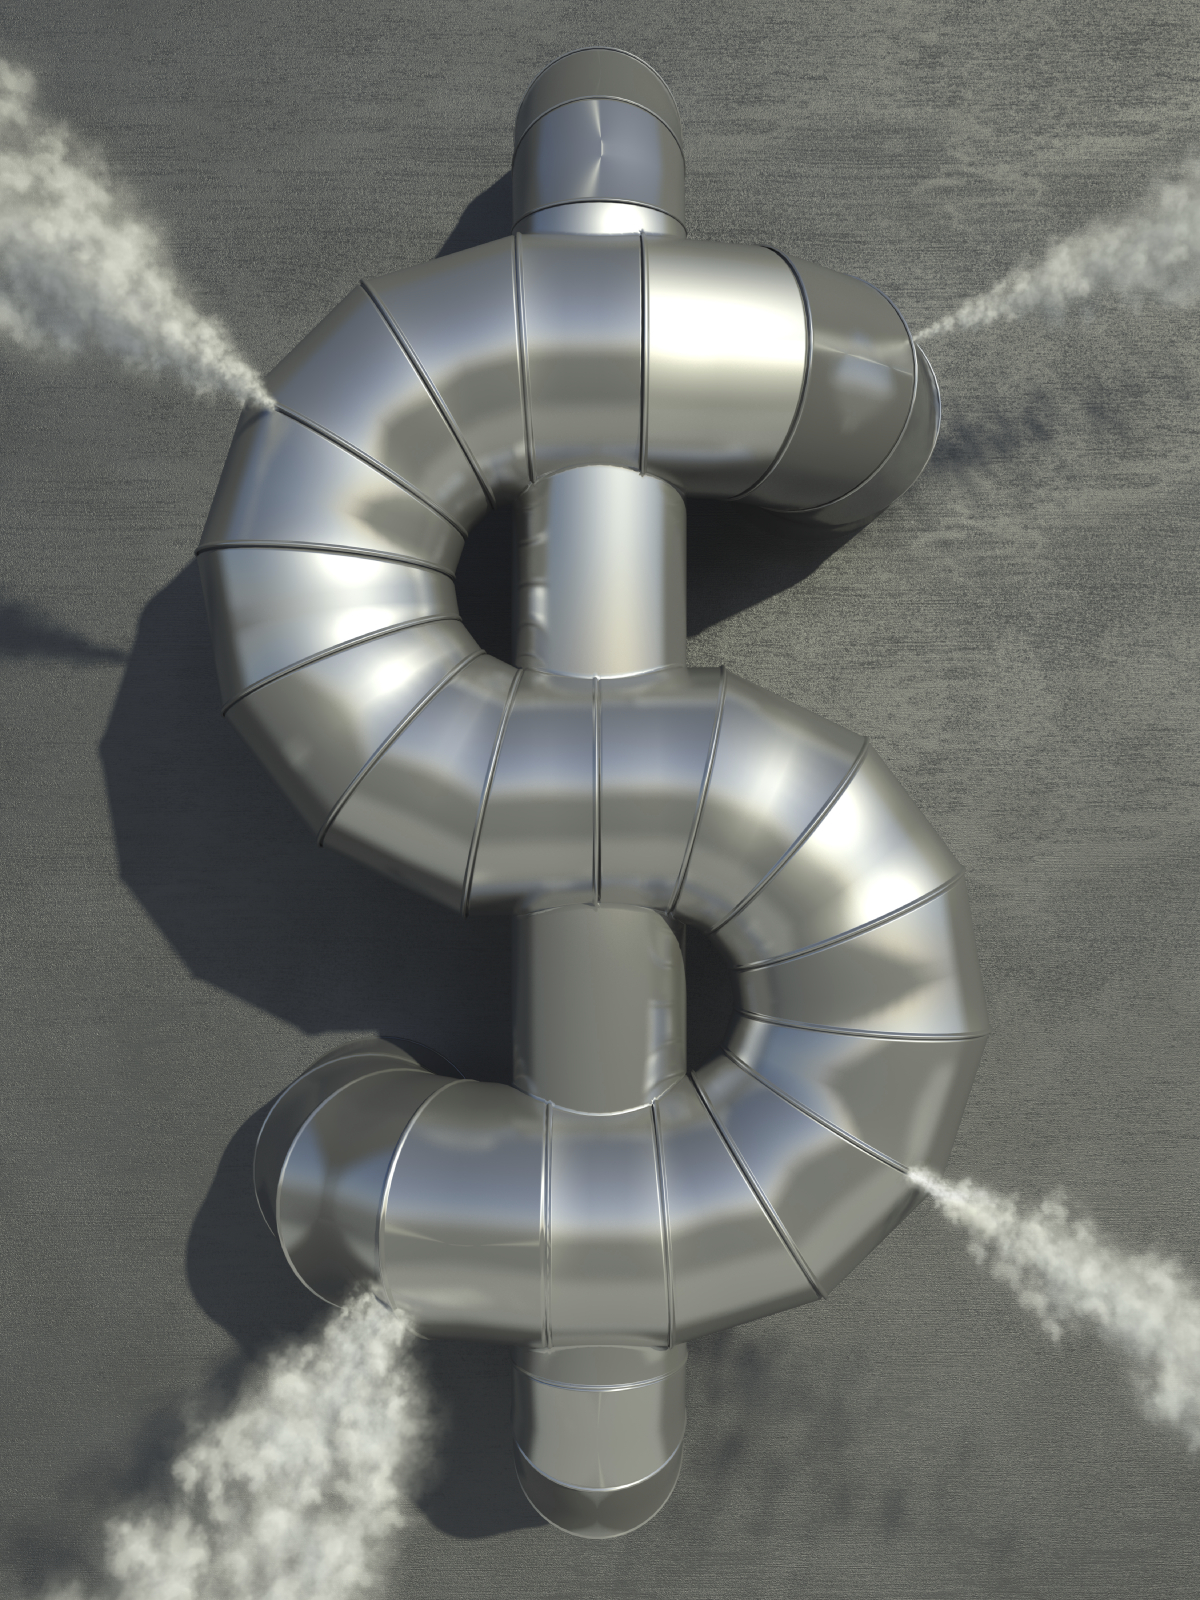 Pressure leaking from industrial pipes in the shape of a dollar sign. Very high resolution 3D render.